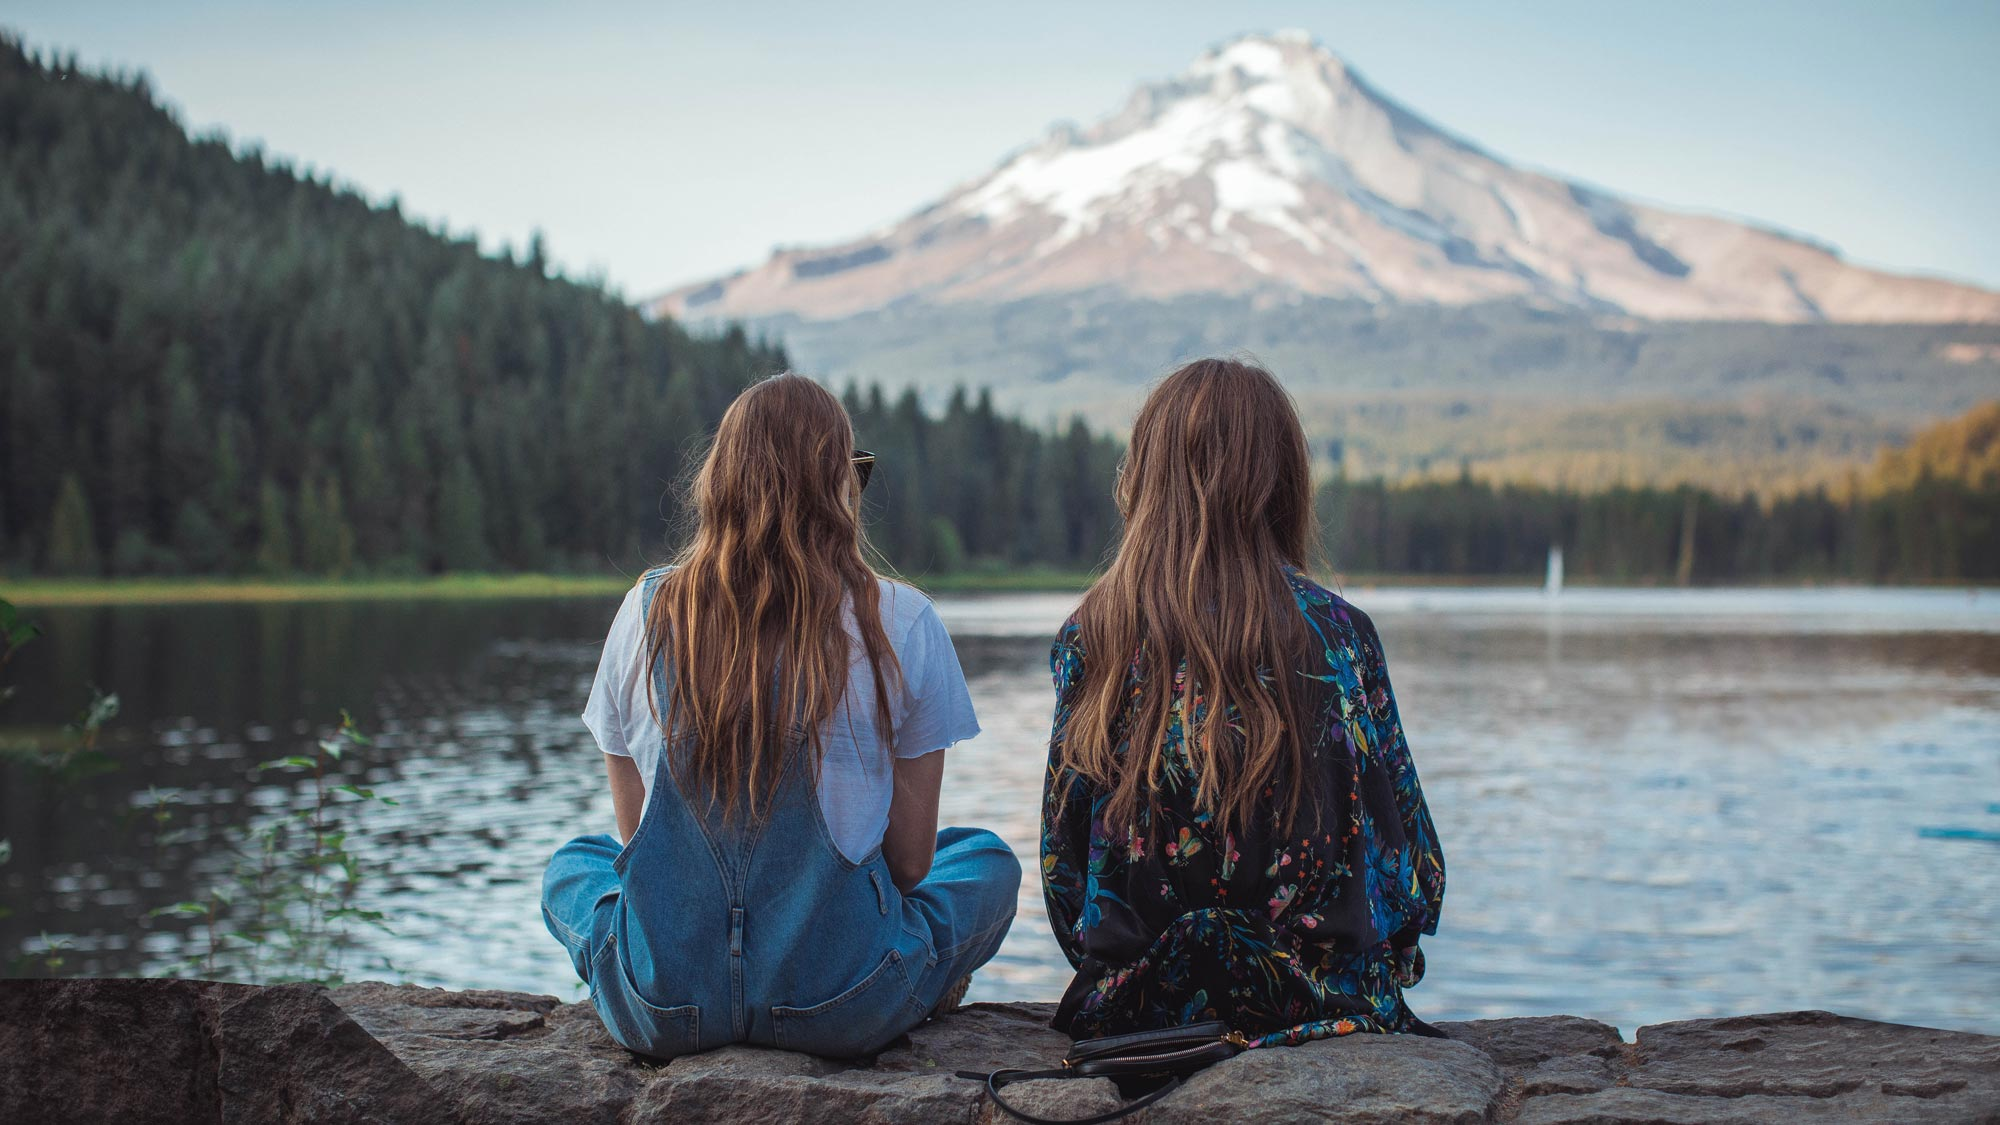 Two friends contemplate the awe that is Mt. Hood